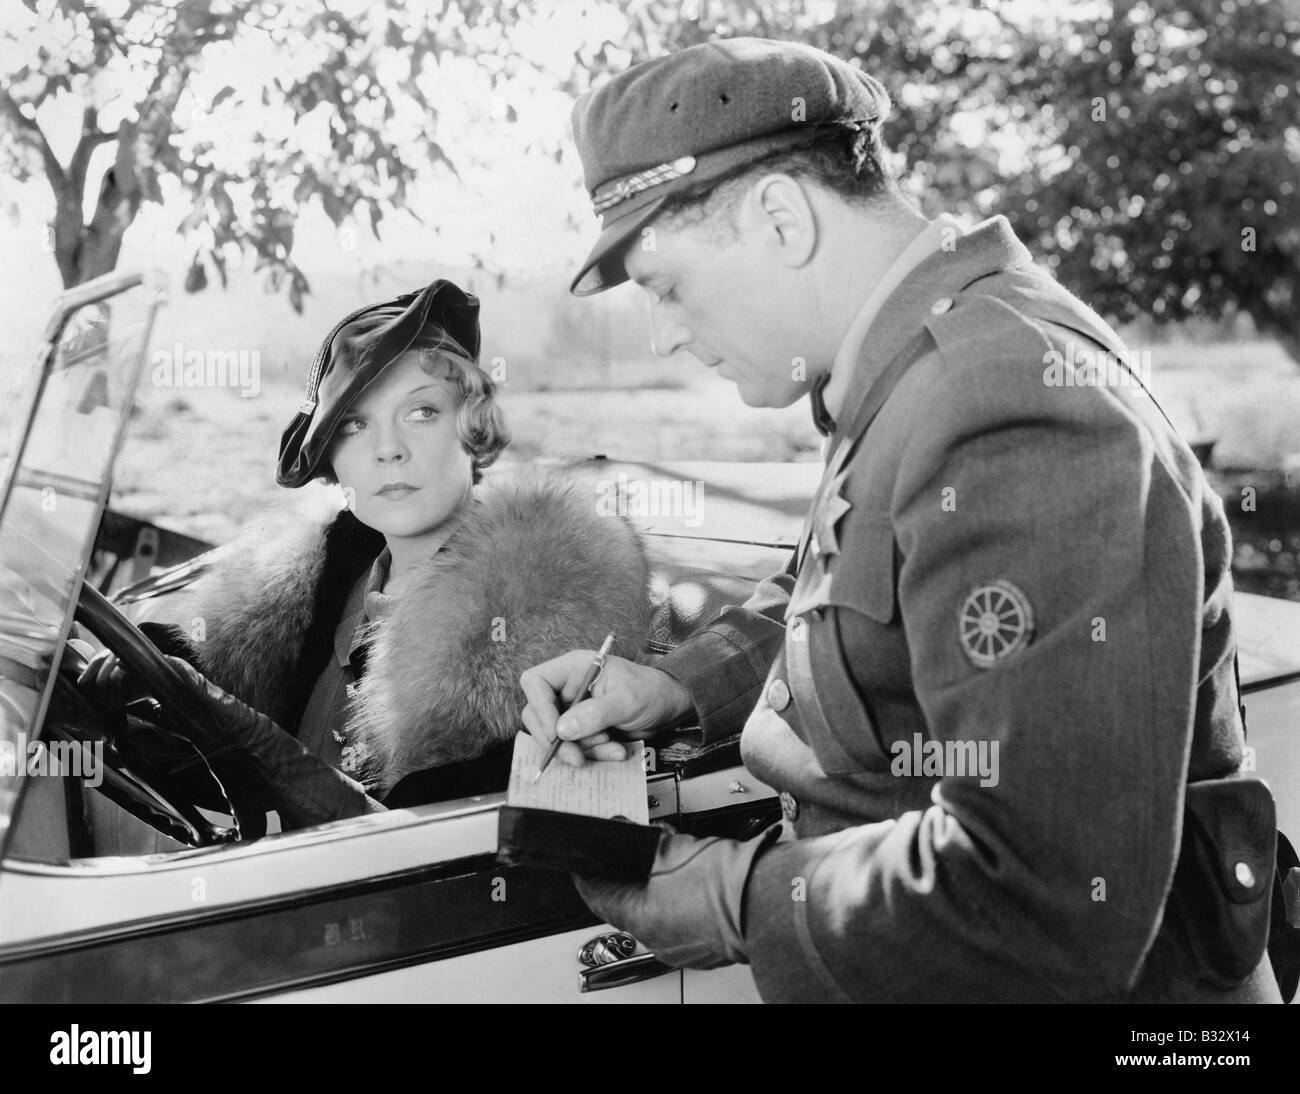 Woman getting a ticket from a policeman - Stock Image